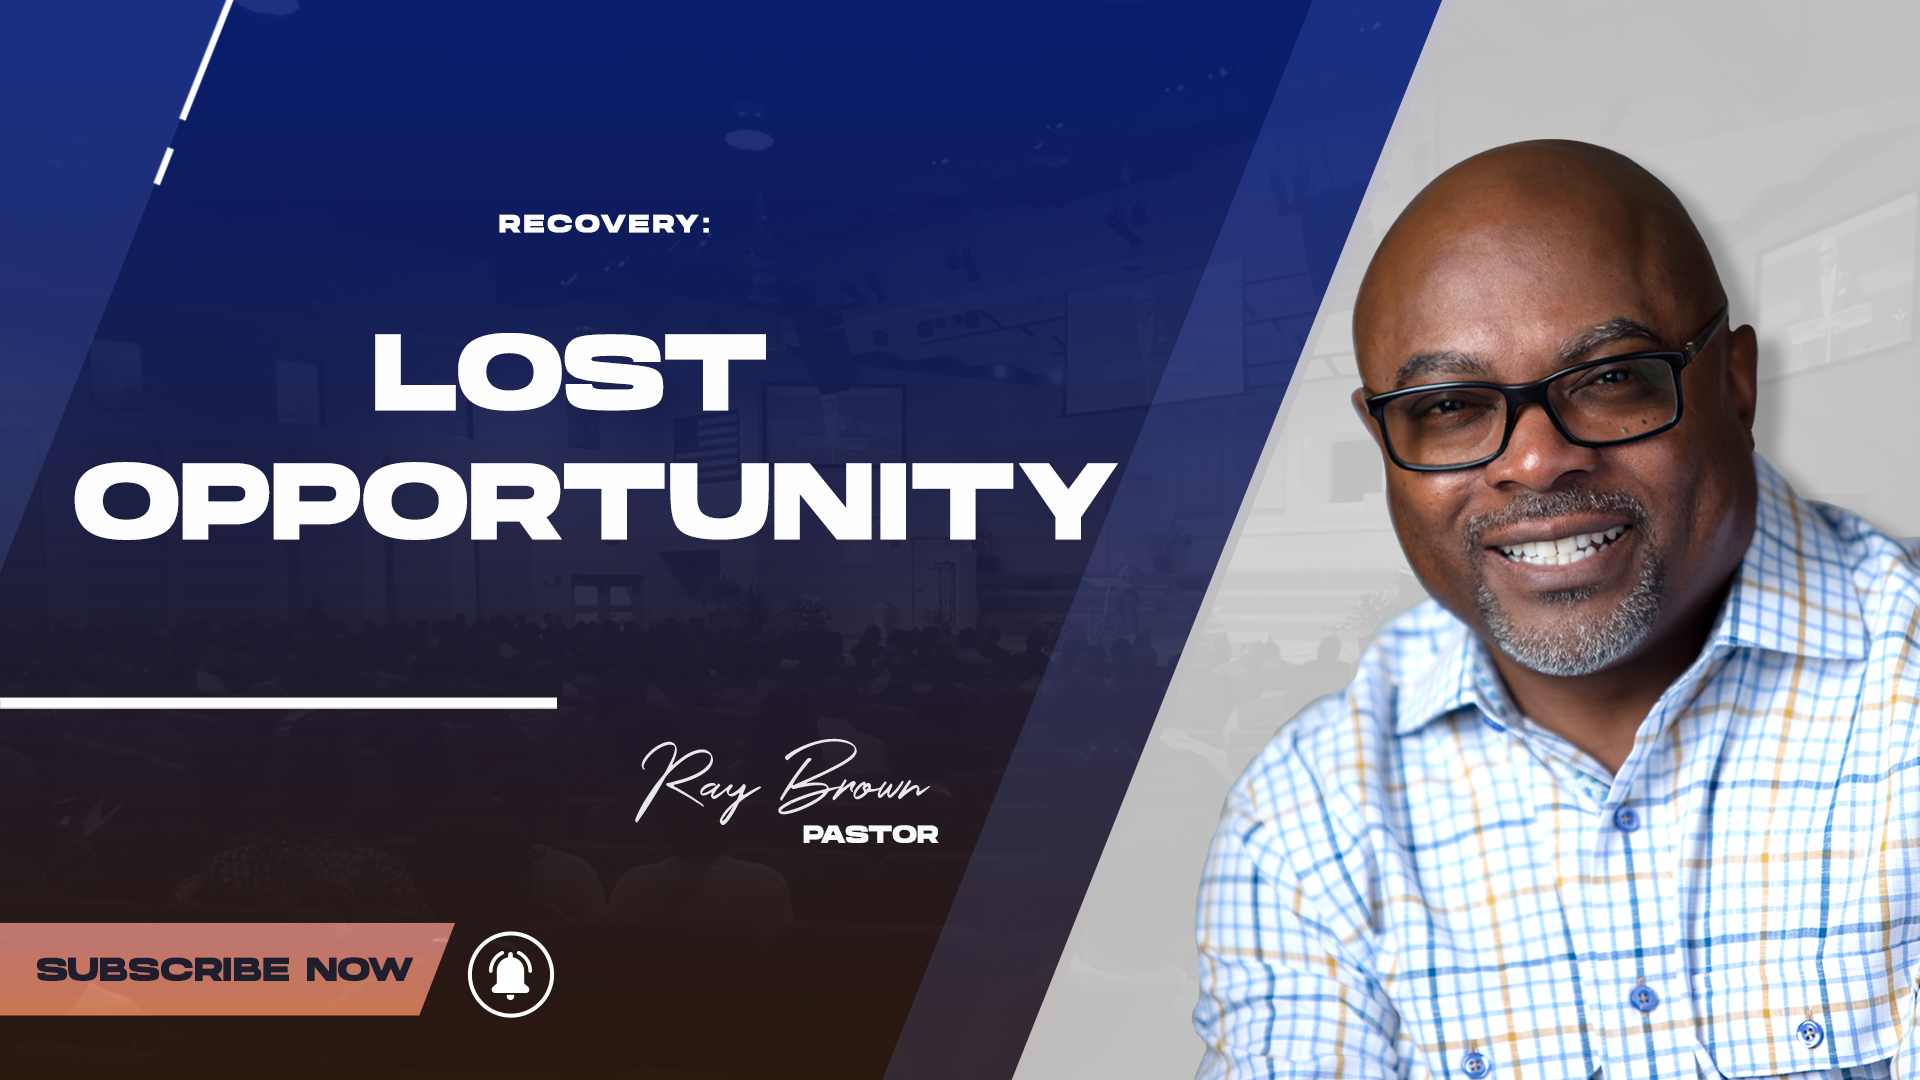 060621_recovery_lost opportunity